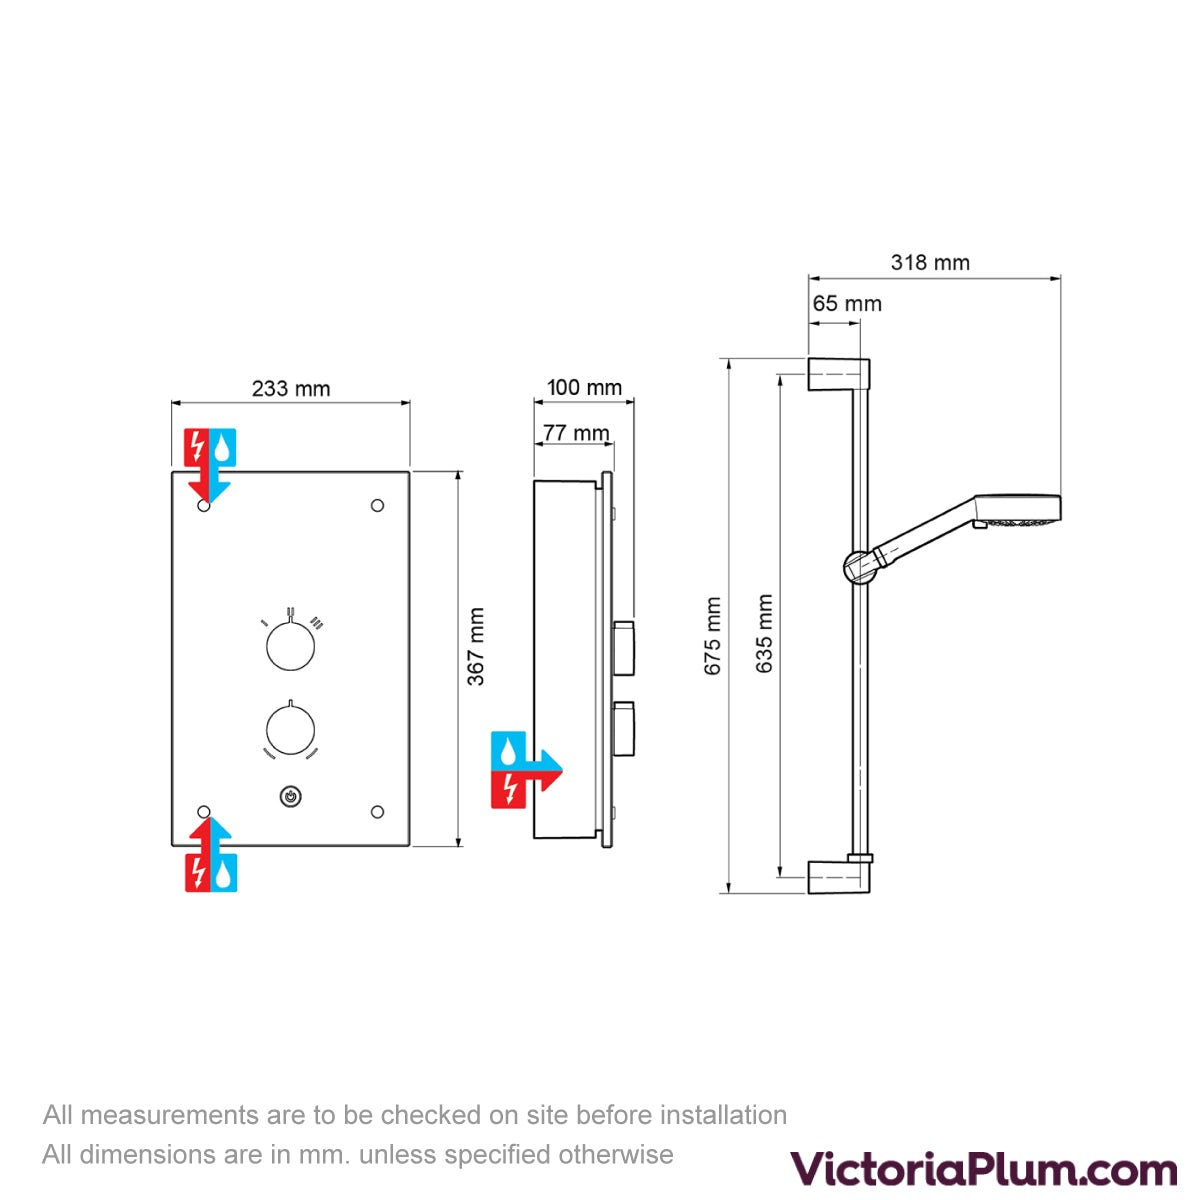 Dimensions for Mira Galena 9.8kw electric shower black flock